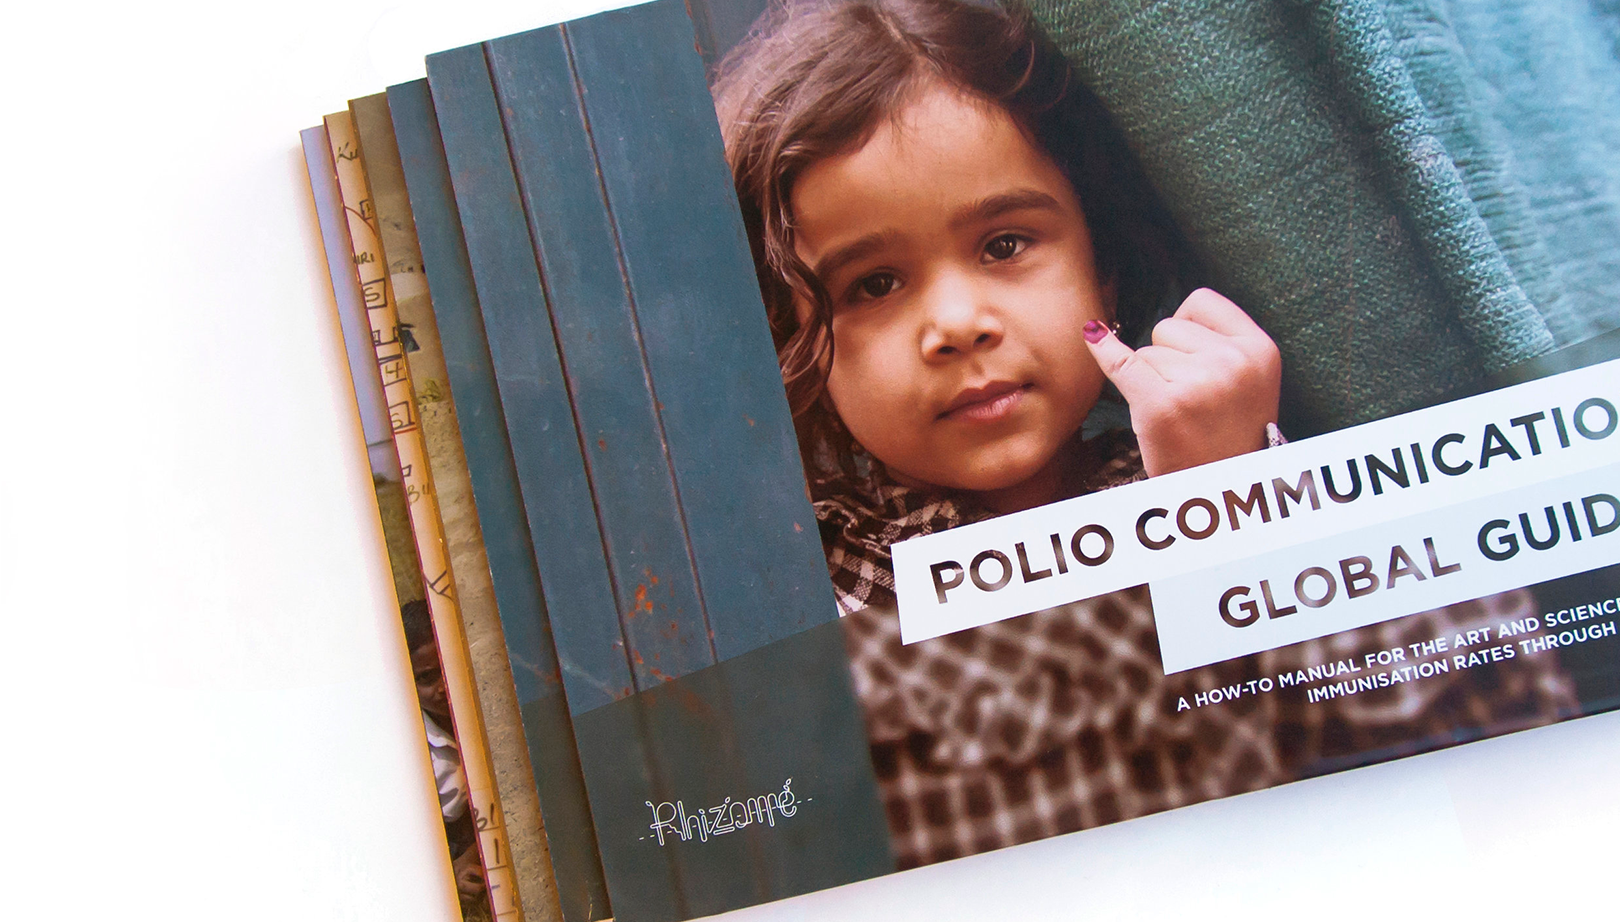 Polio-Home-06.png